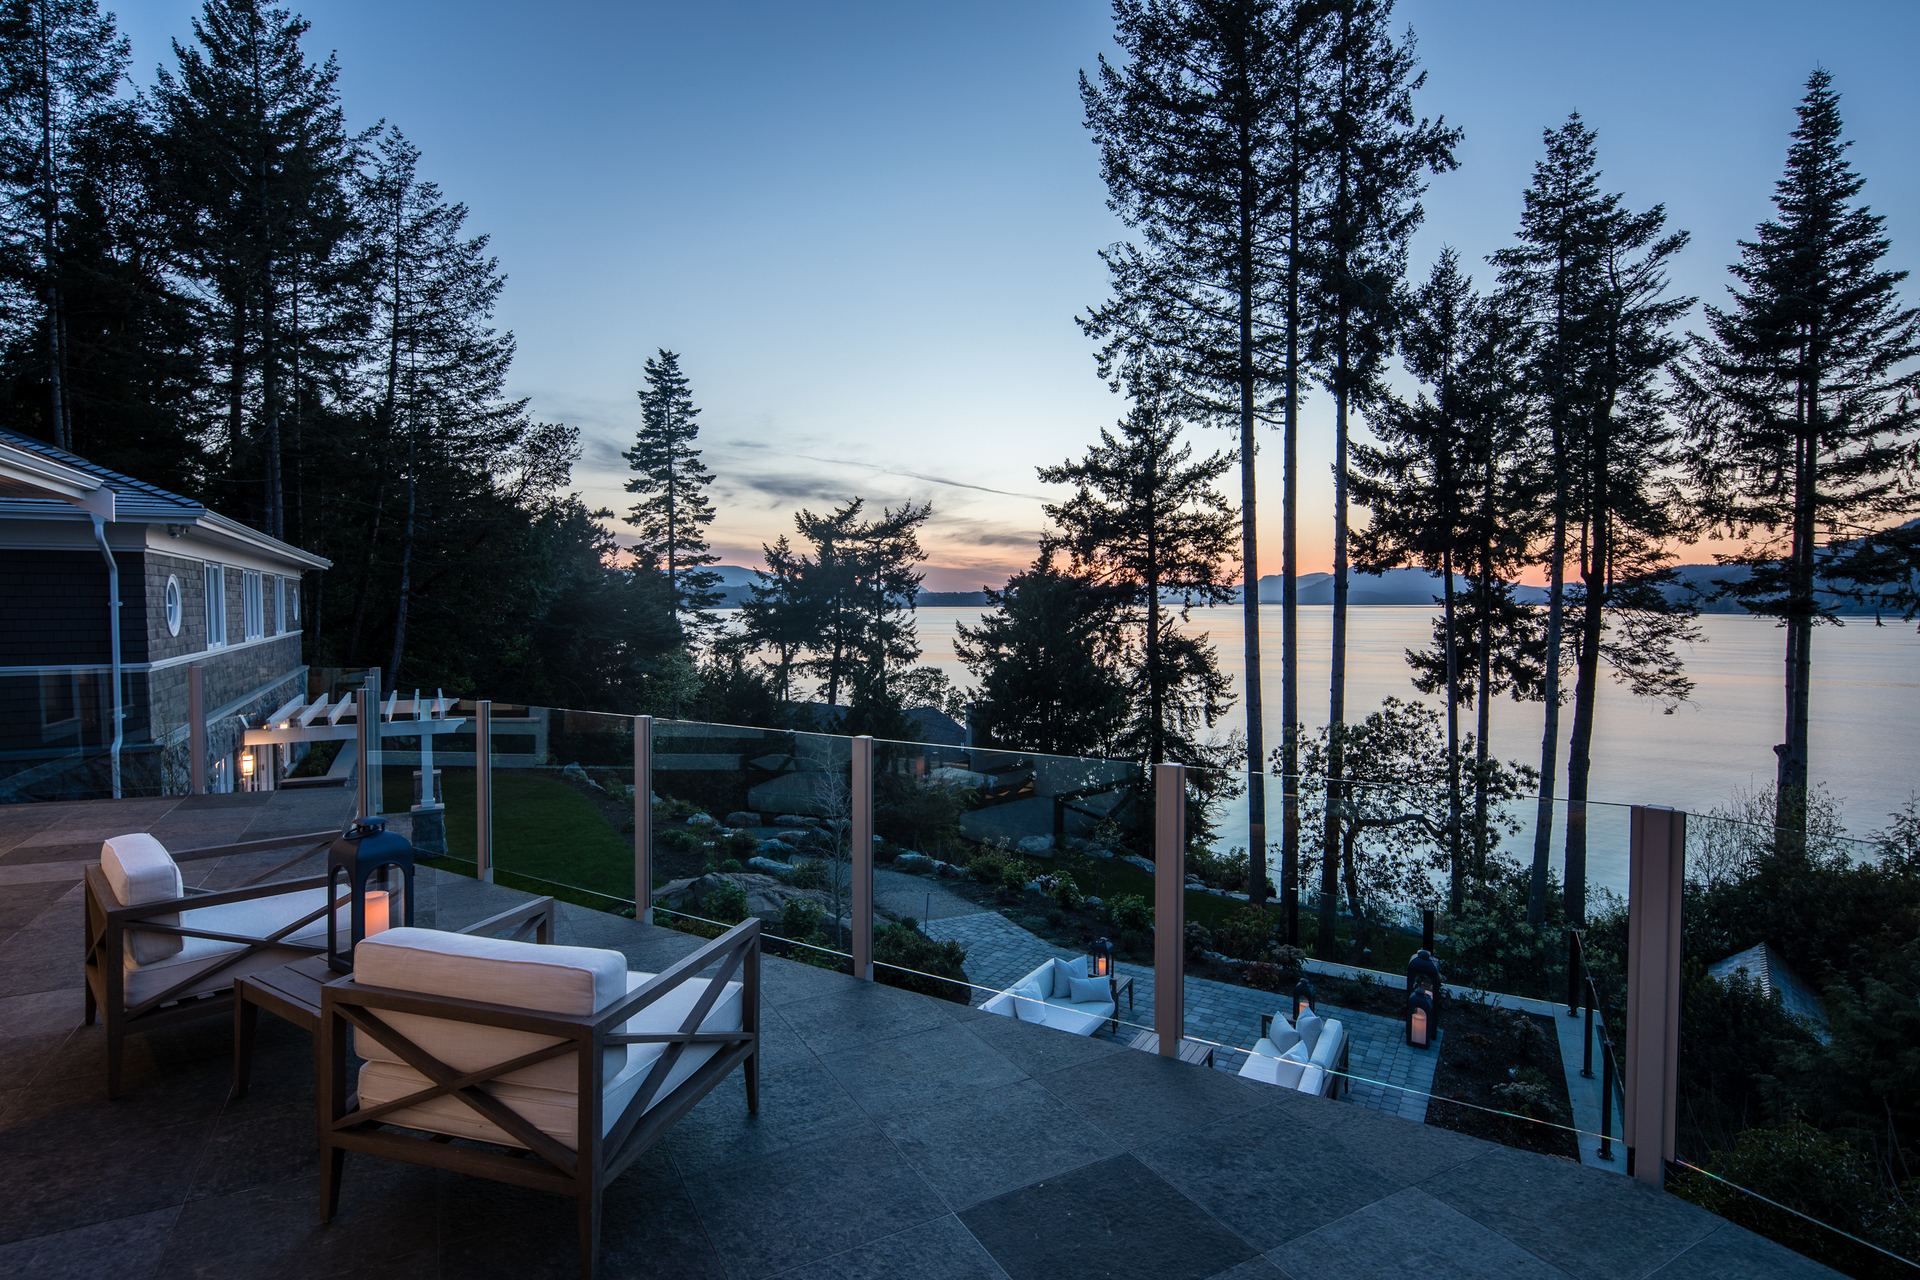 Main House Deck View at 518 North Lands End Road, Saanich Saanich, Vancouver Island